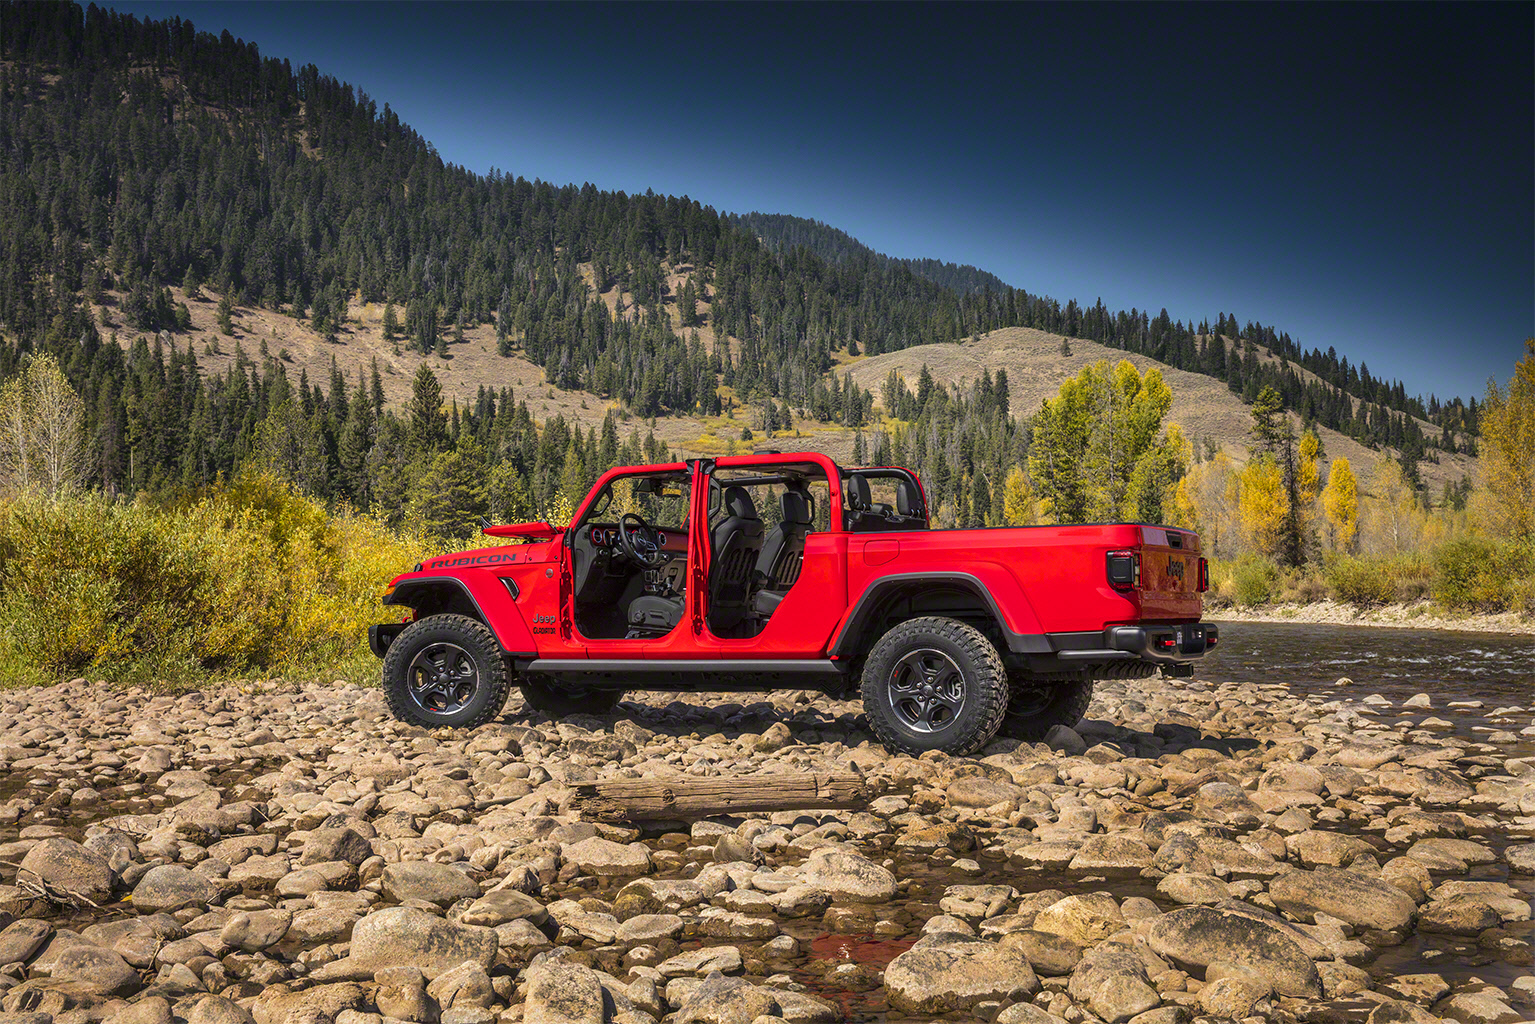 2020 Jeep Gladiator side doors off river bed